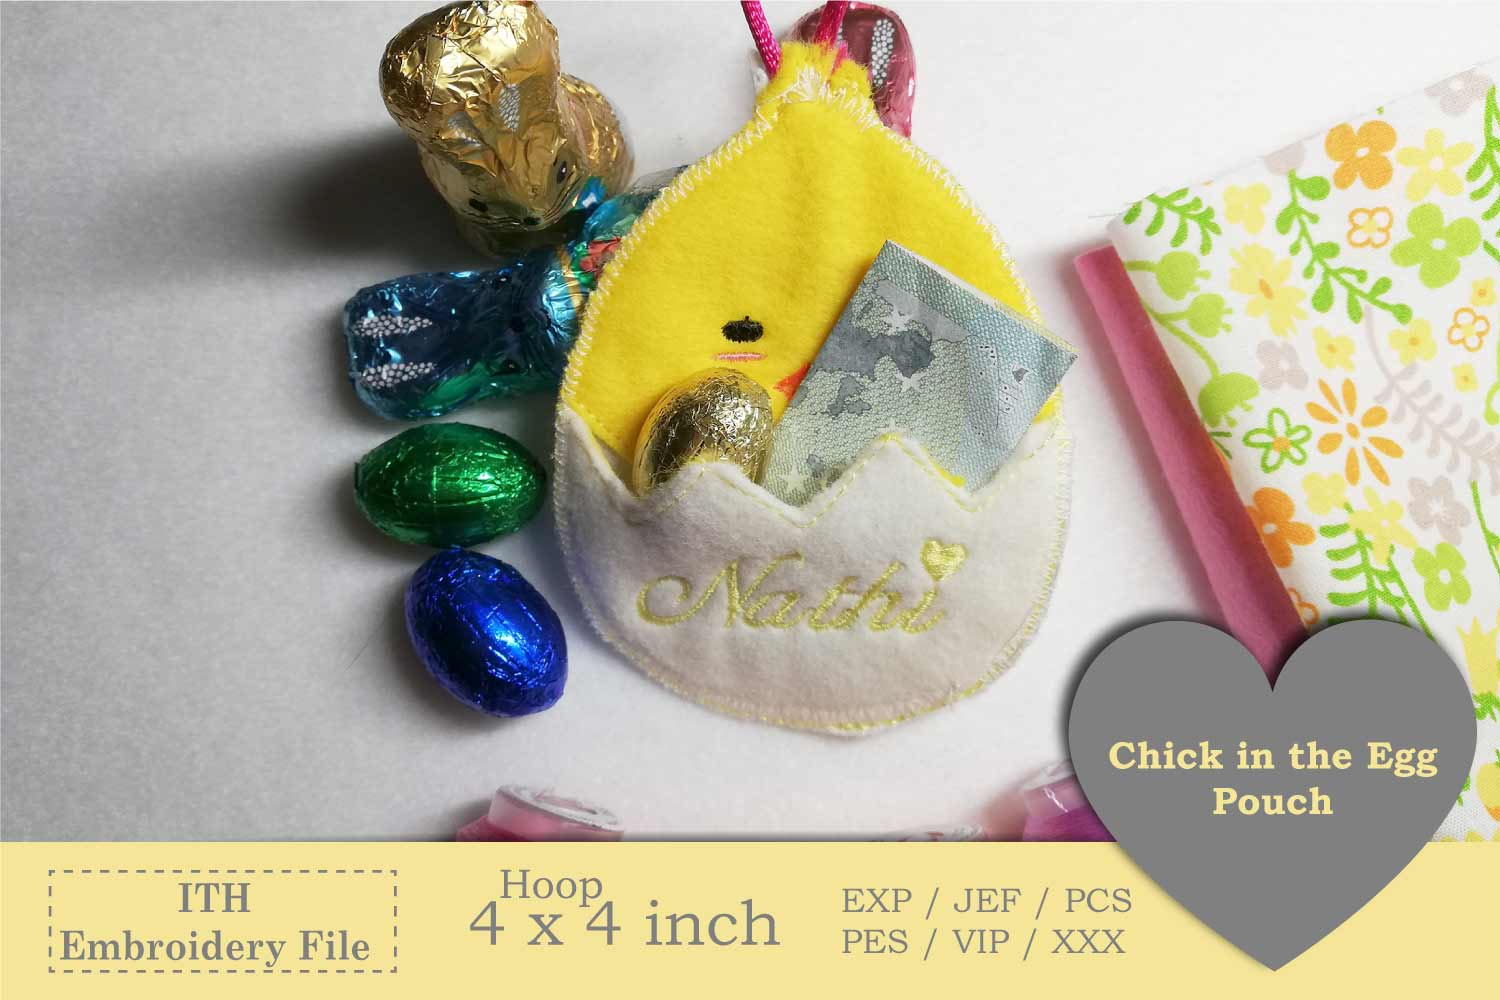 ITH - Chick in Egg Pouch - Great Idea for Money Gifts example image 2